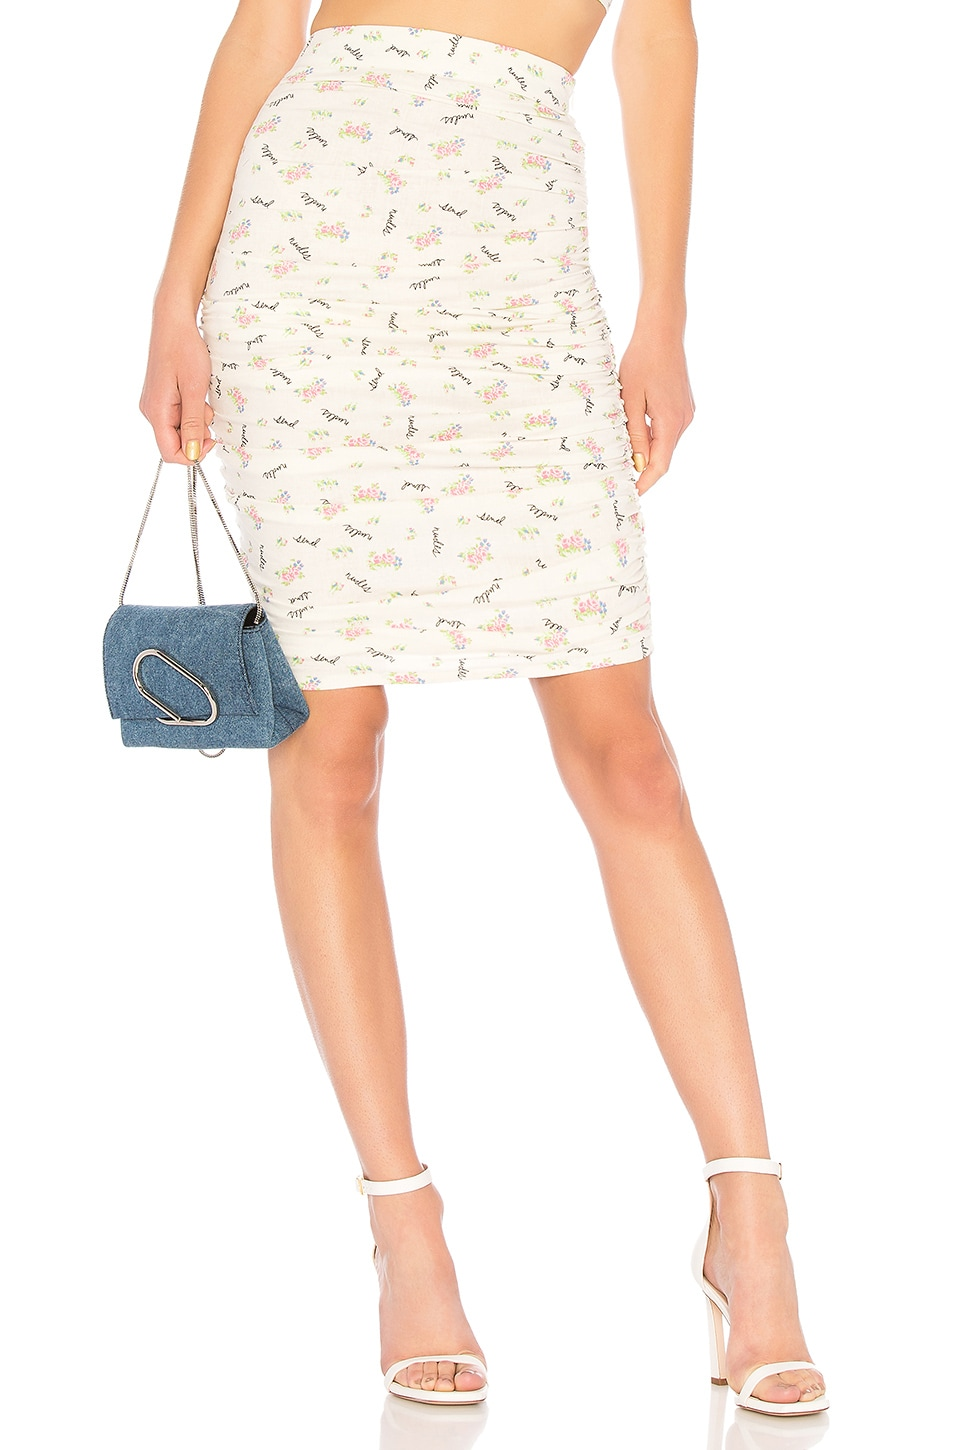 LPA Shirred Skirt in Send Nudes Floral